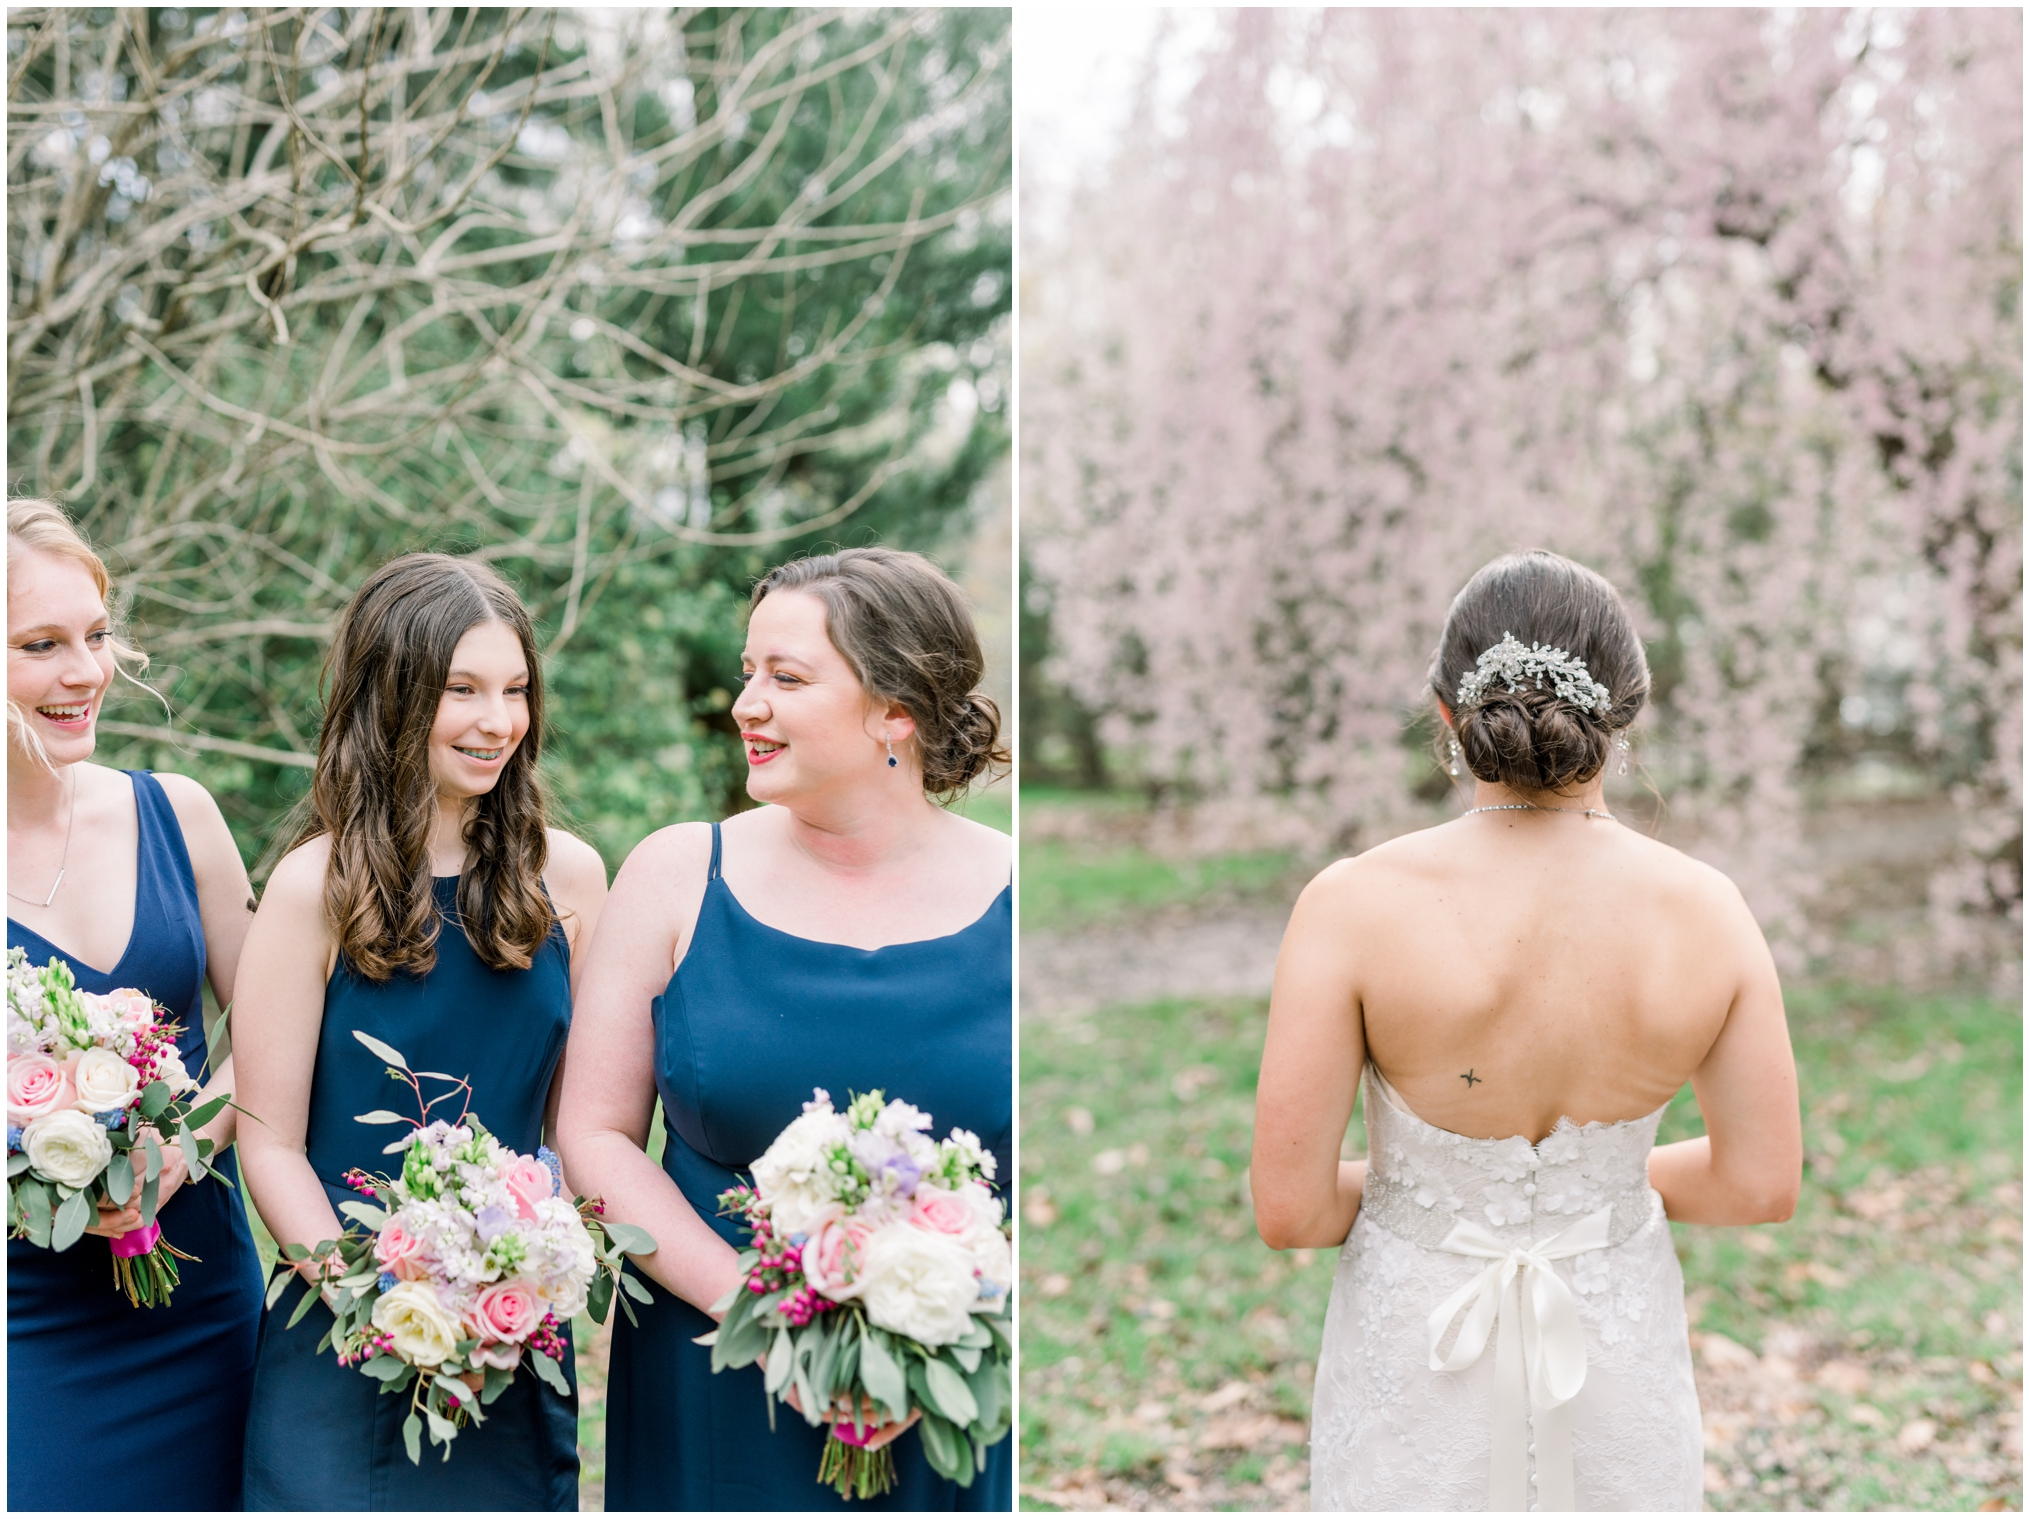 Krista Brackin Photography | April Wedding at The Carriage House at Rockwood Park_0055.jpg